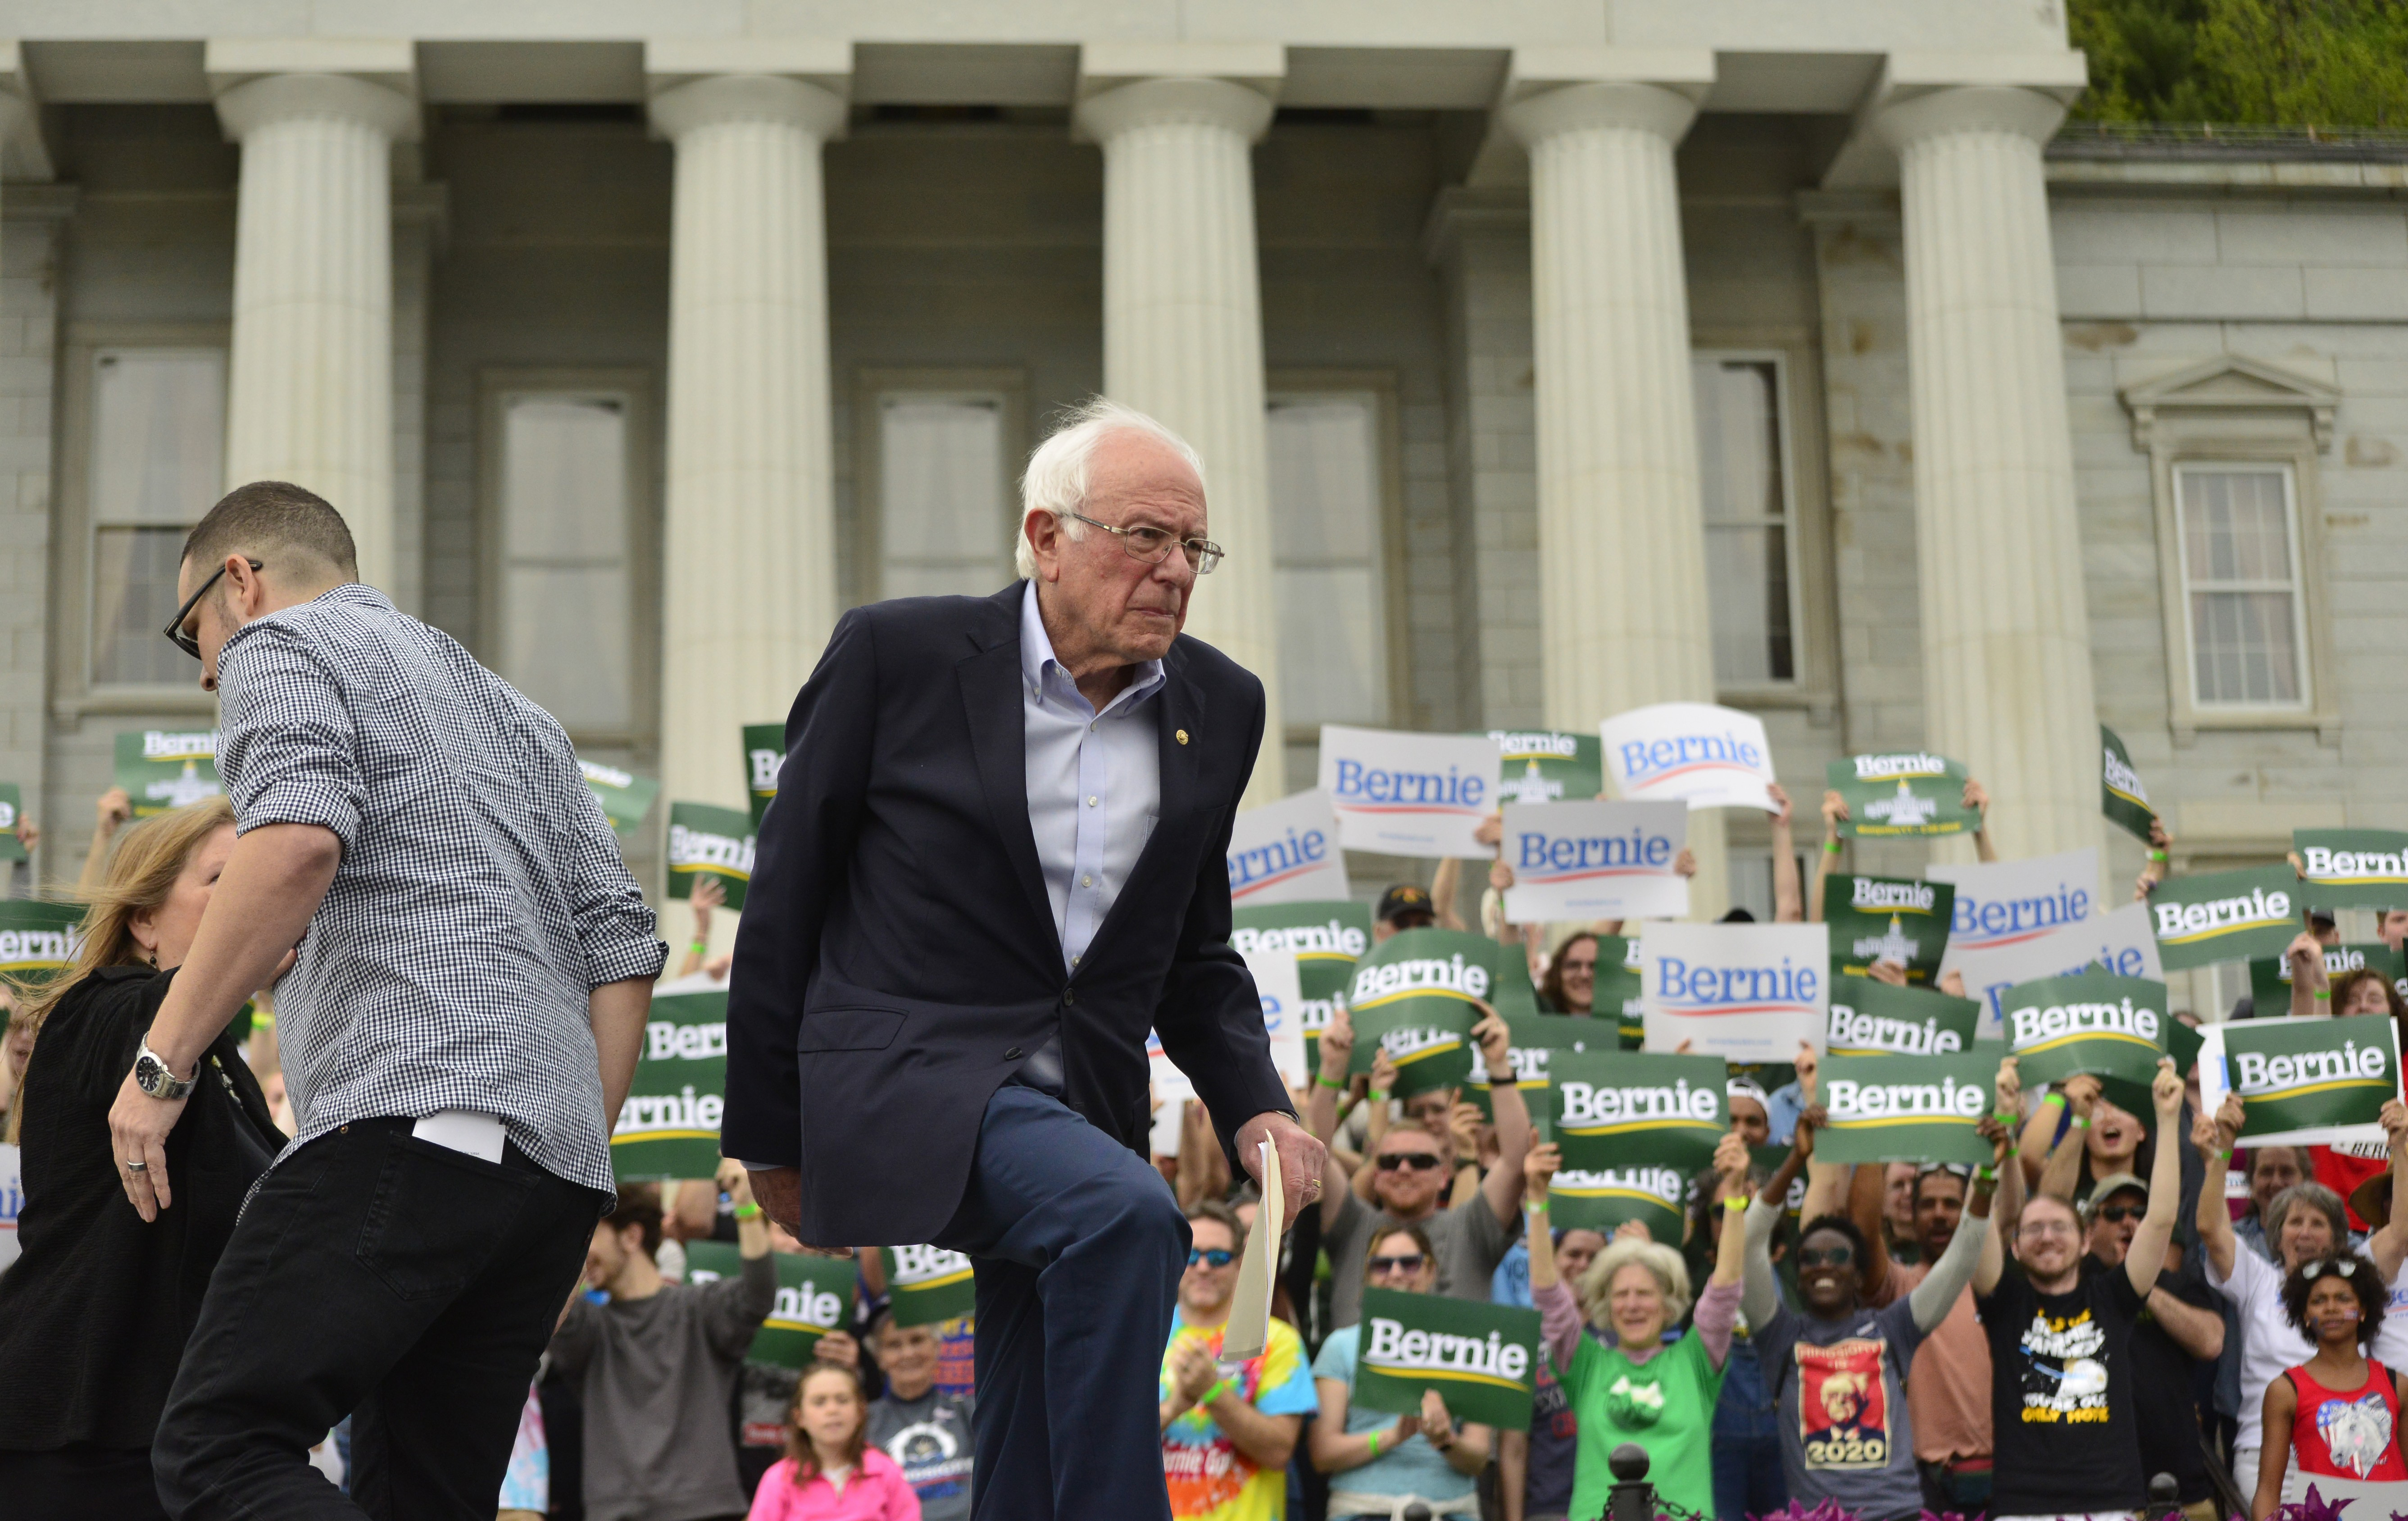 Poll shows Sanders edging out Biden in NM, lesser support for Pres